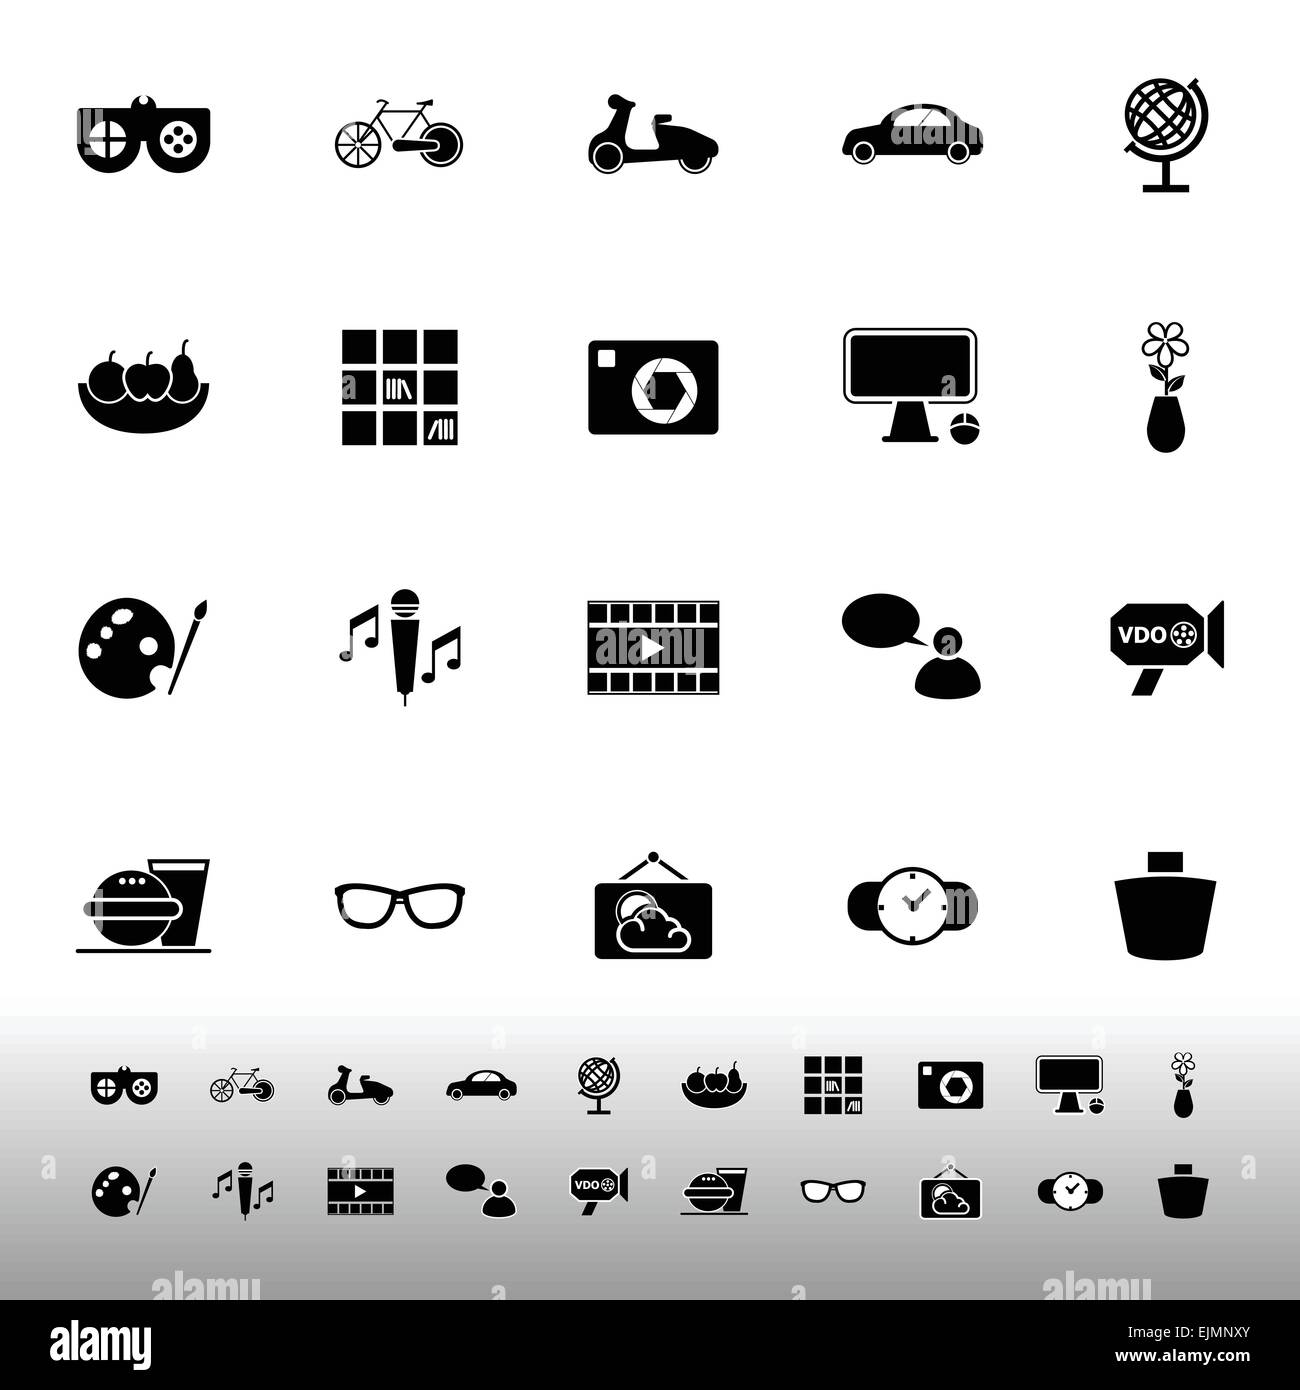 Favorite and like icons on white background, stock vector - Stock Image